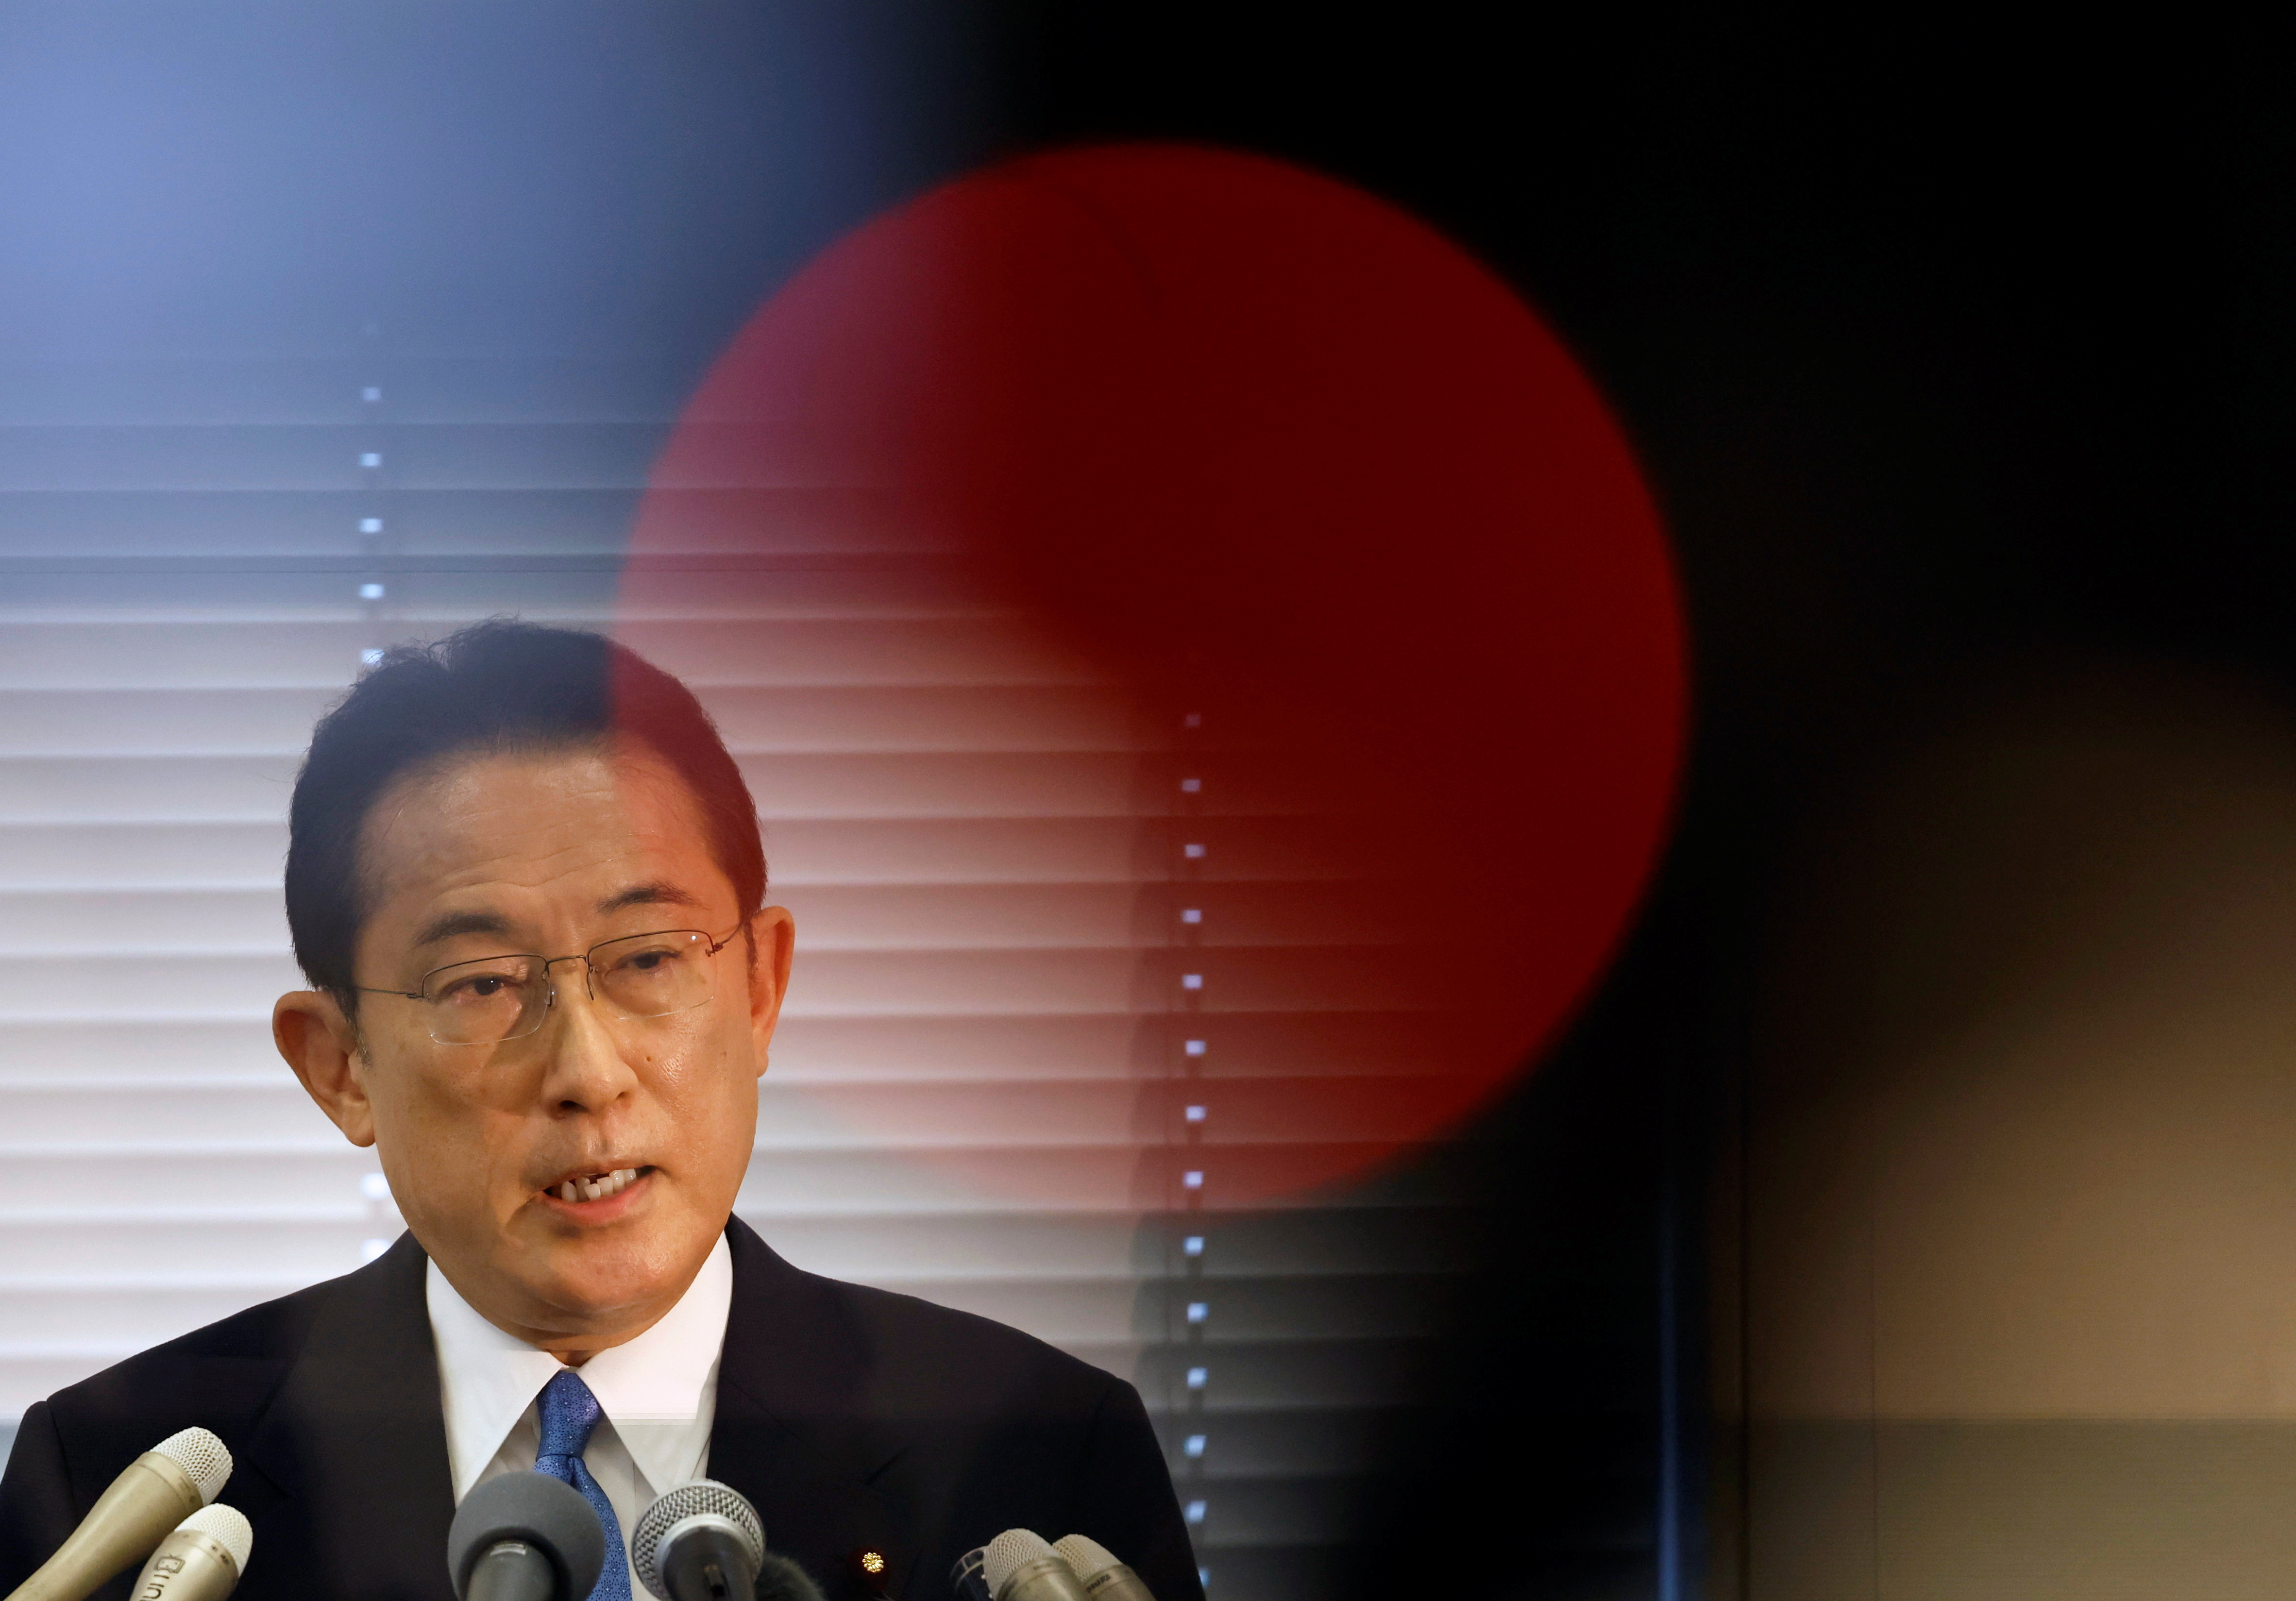 Fumio Kishida, Japan's ruling Liberal Democratic Party (LDP) lawmaker and former foreign minister, announces his candidacy for the party's presidential election at a news conference in Tokyo, Japan, August 26, 2021.  REUTERS/Issei Kato